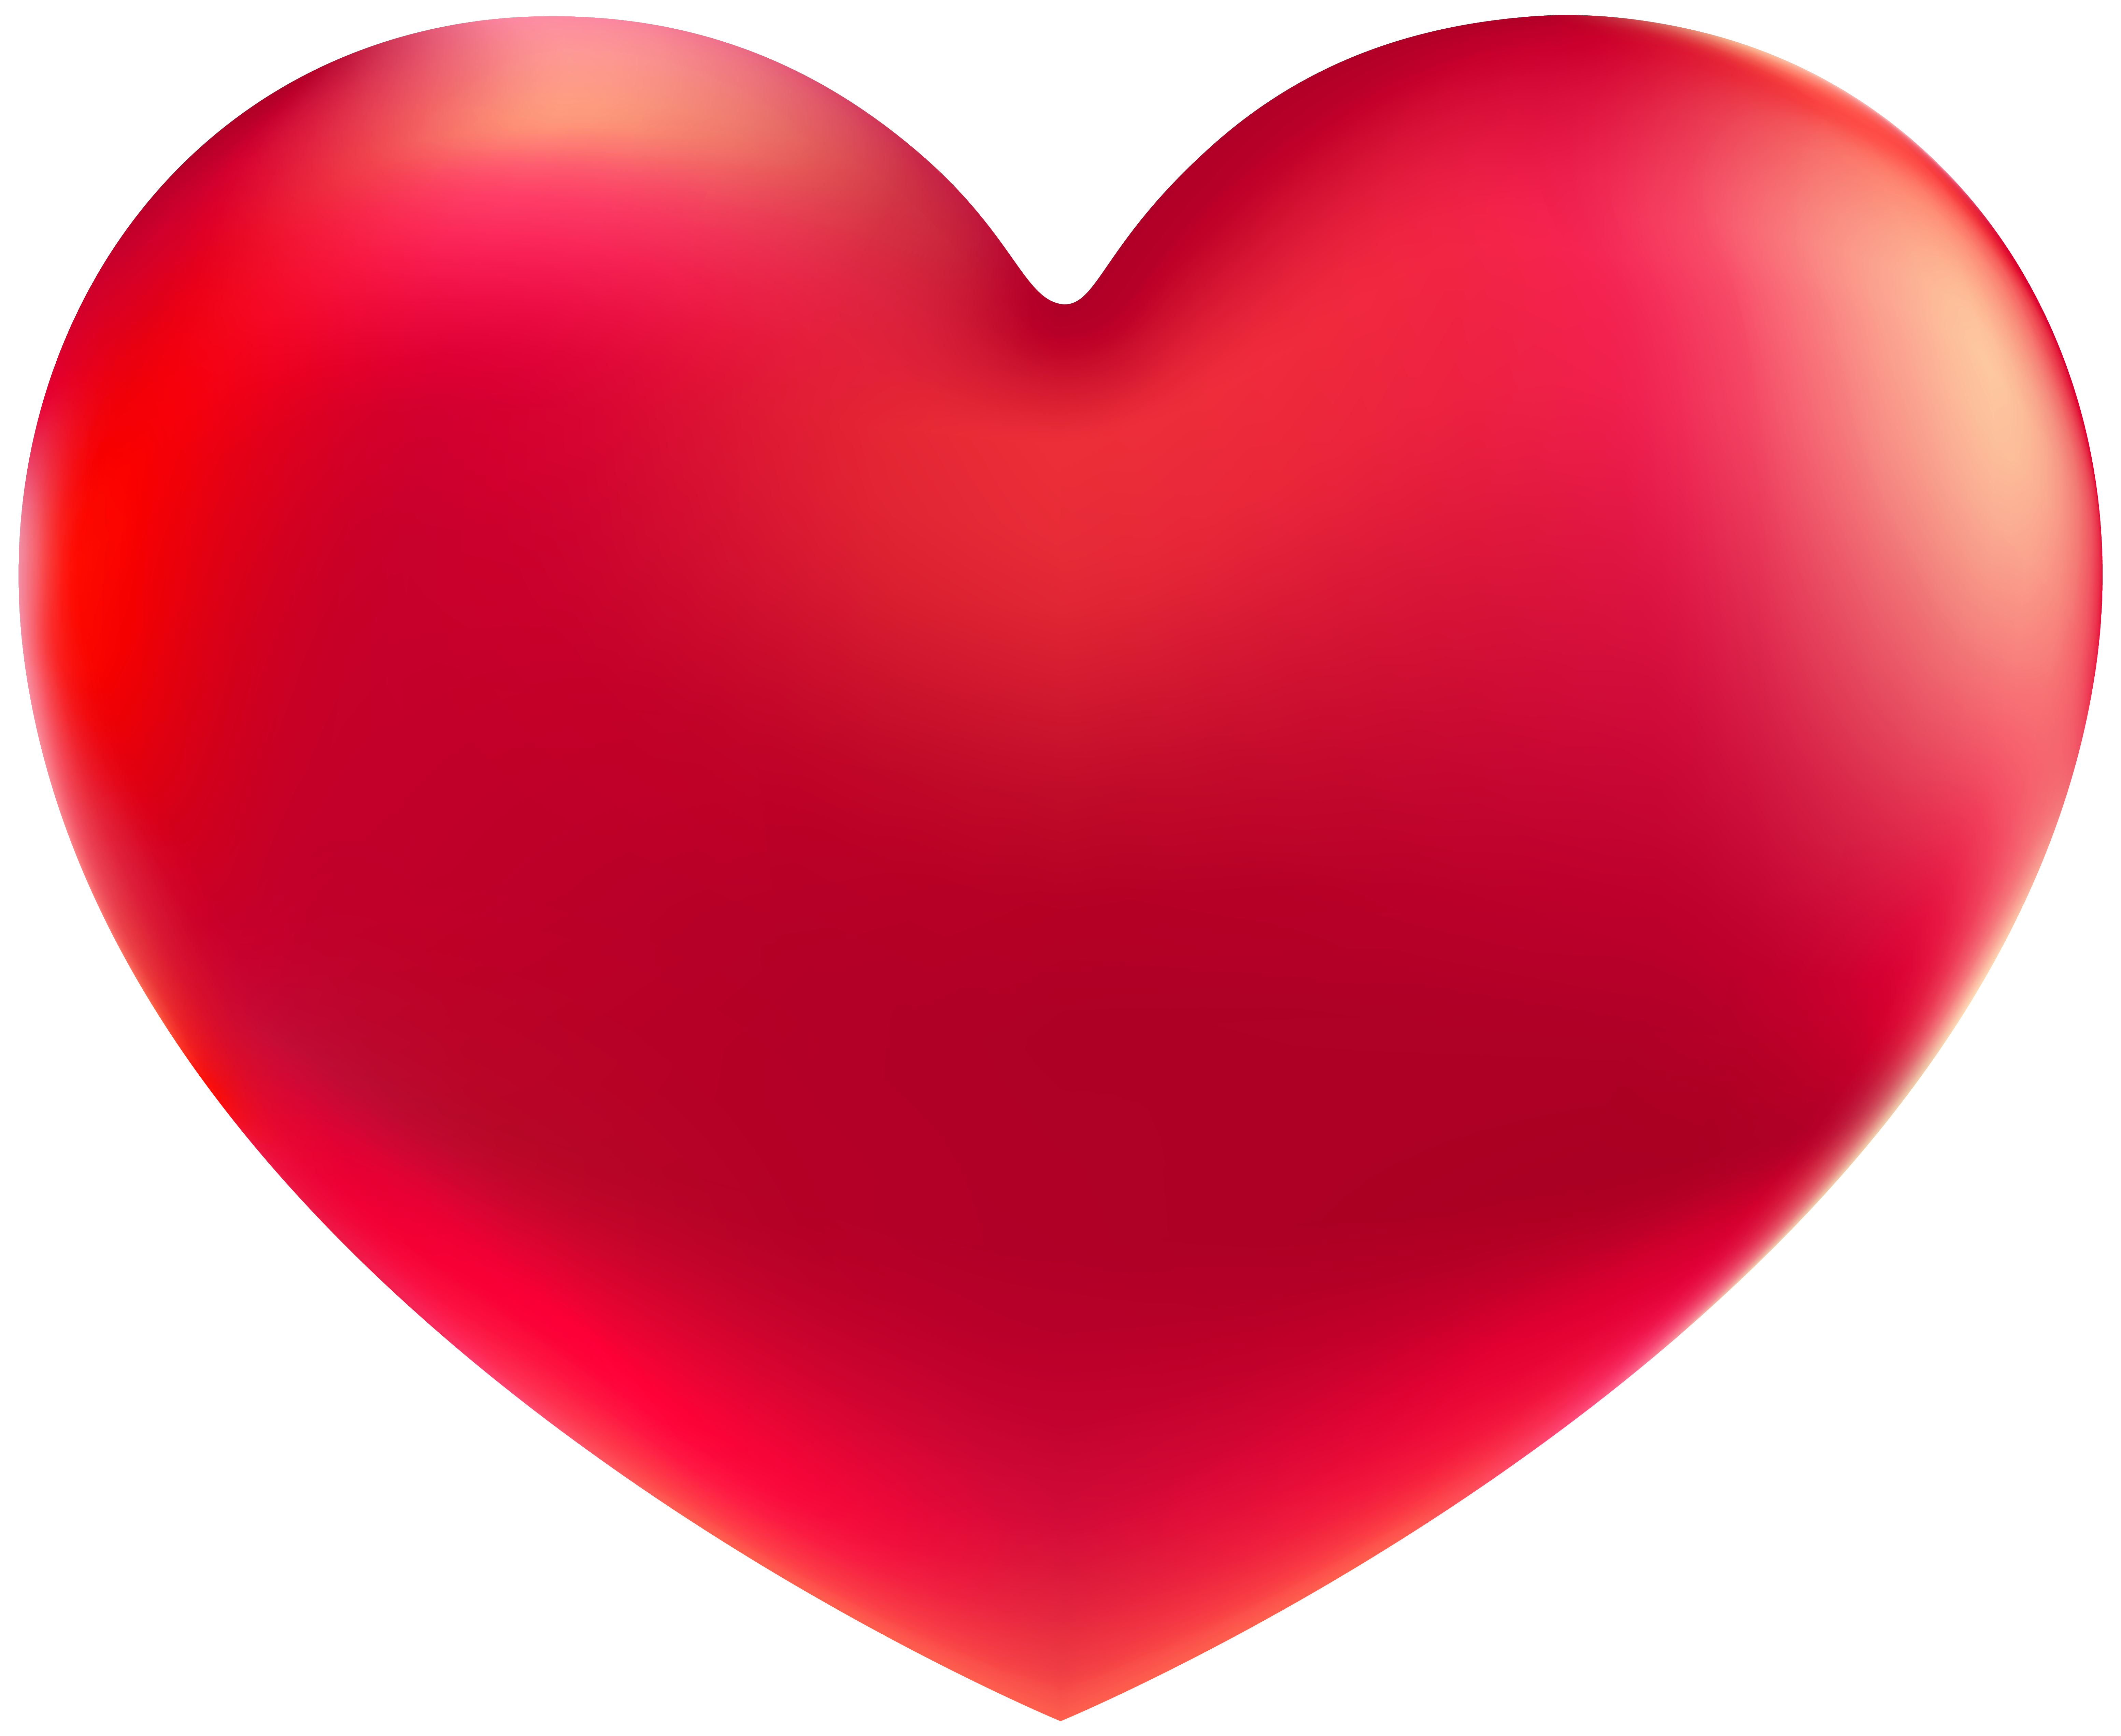 Red heart clipart svg library download Red Heart PNG Clipart Image | Gallery Yopriceville - High-Quality ... svg library download